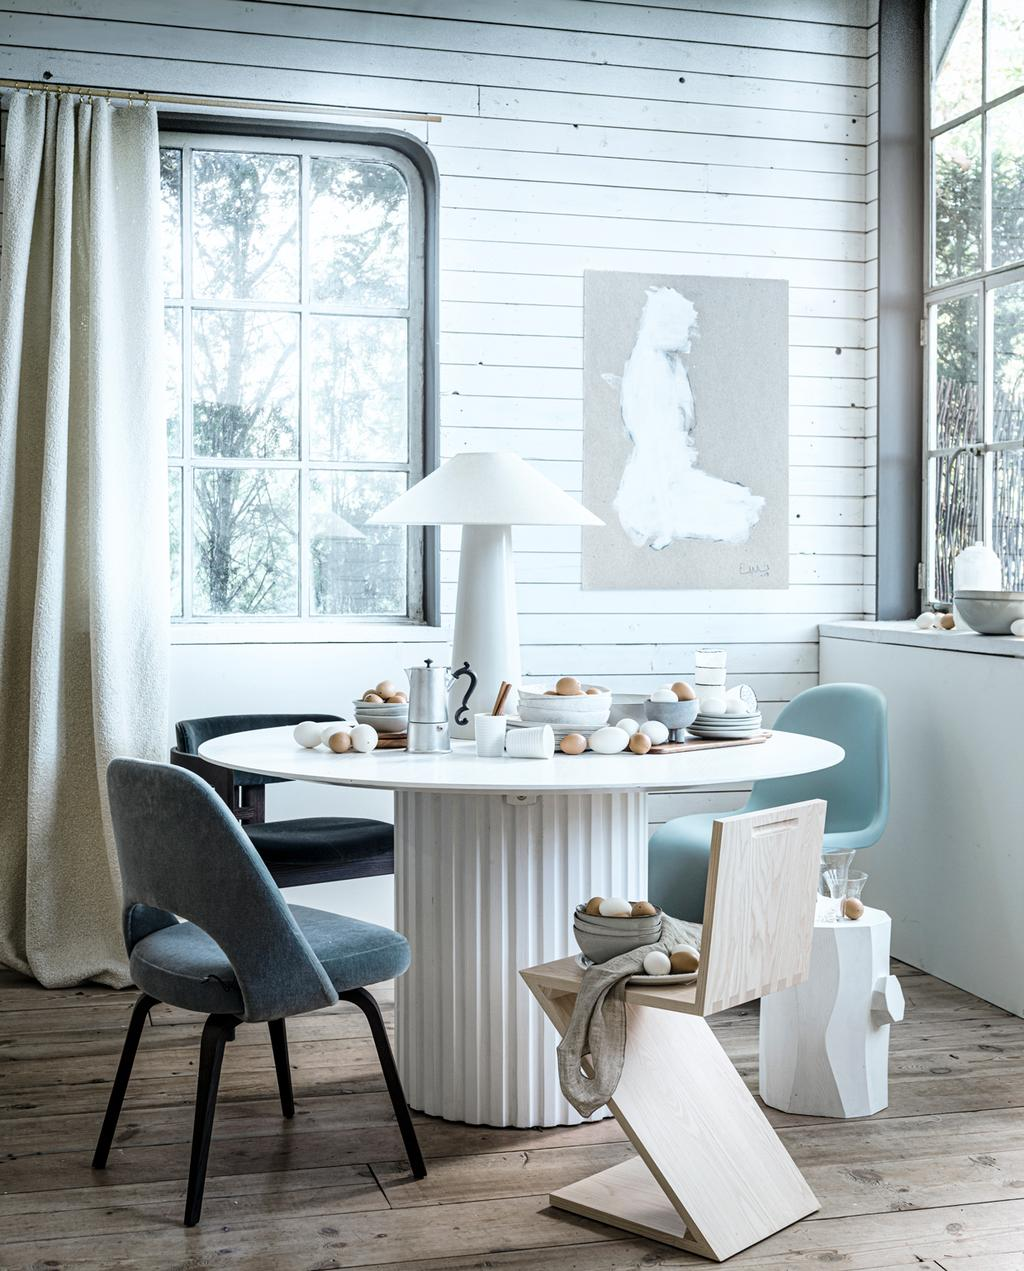 vtwonen 2-2020 | styling warm winter wit eetkamertafel ijstinten